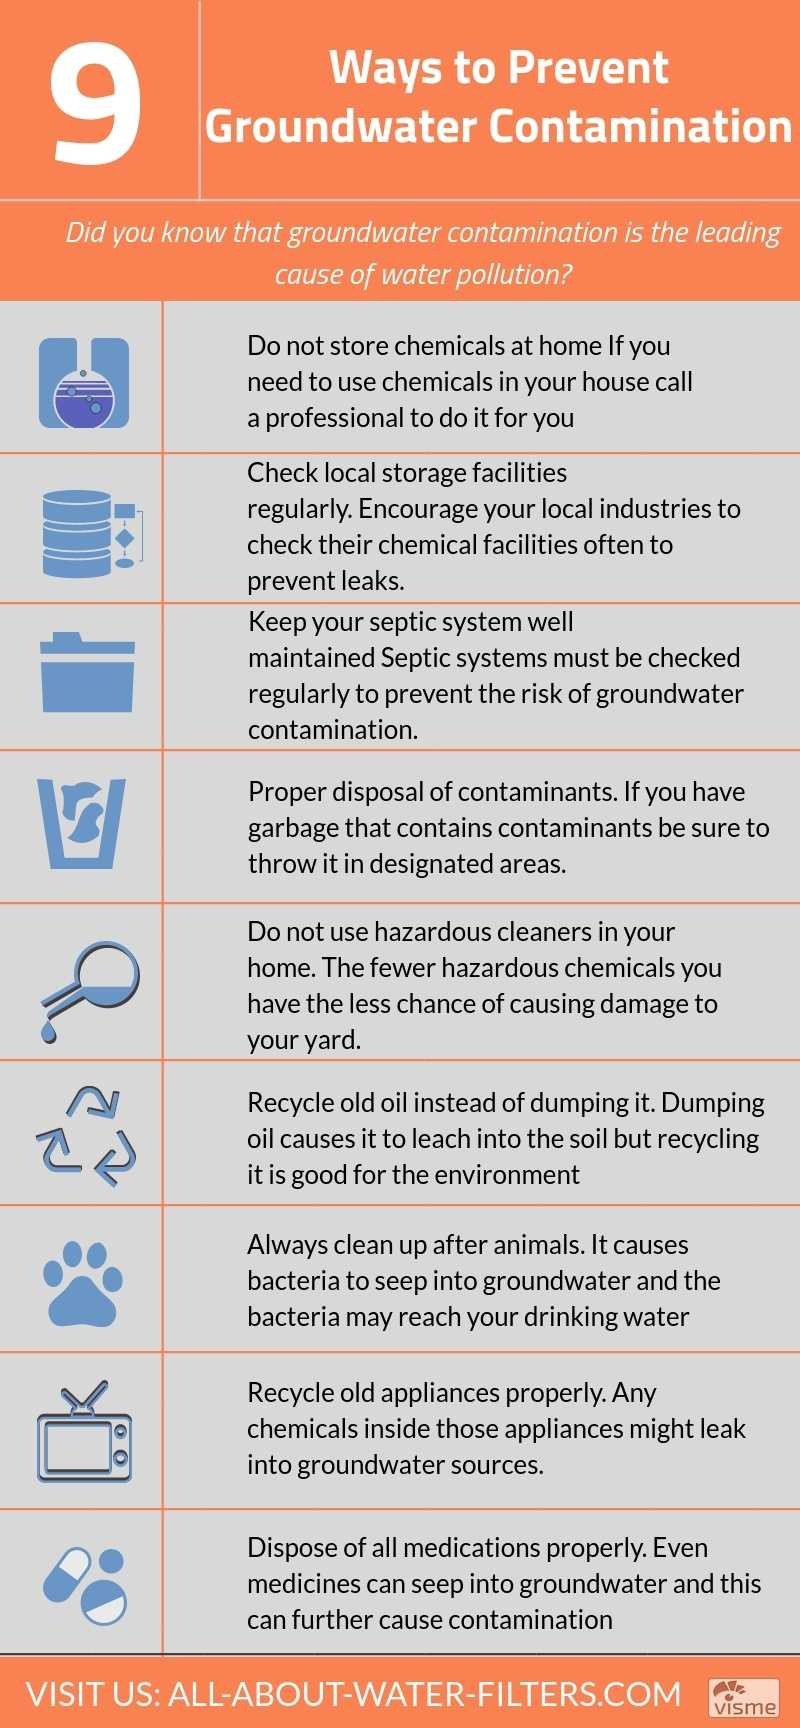 9 Ways to Prevent Groundwater Contamination